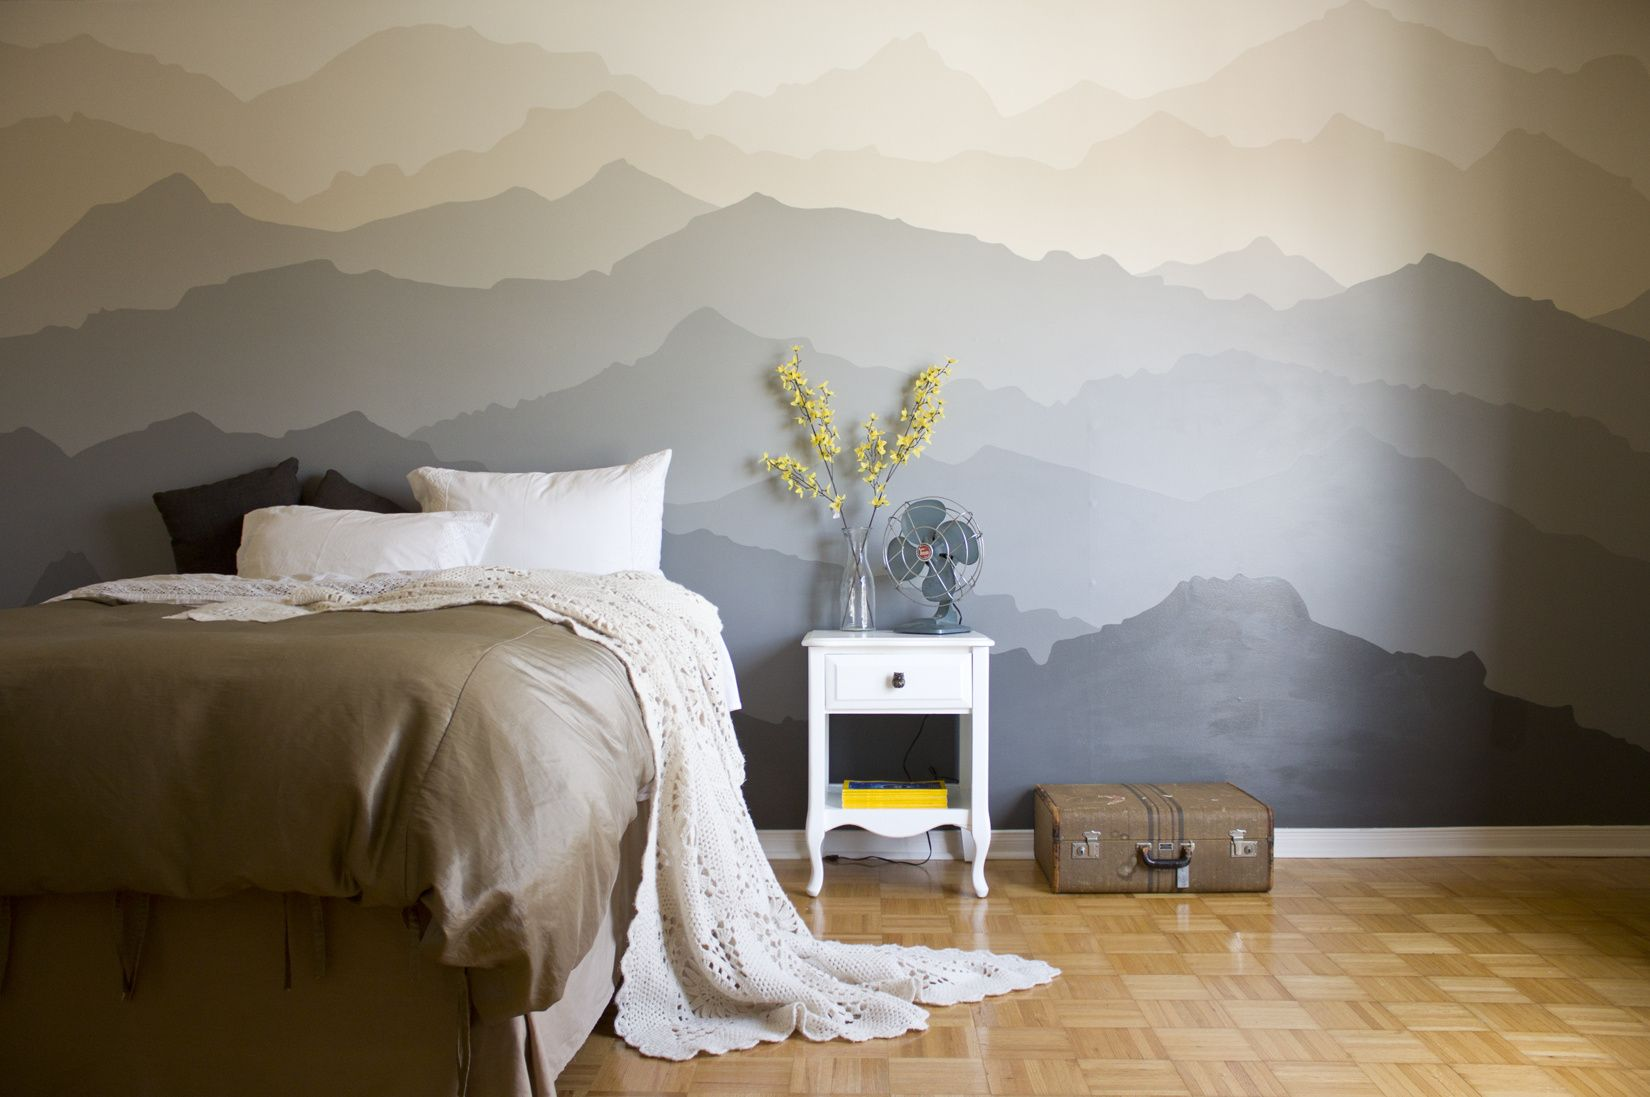 Wandmalerei Schlafzimmer Pam Lostracco Home Decor For The Home Pinterest Wanddeko